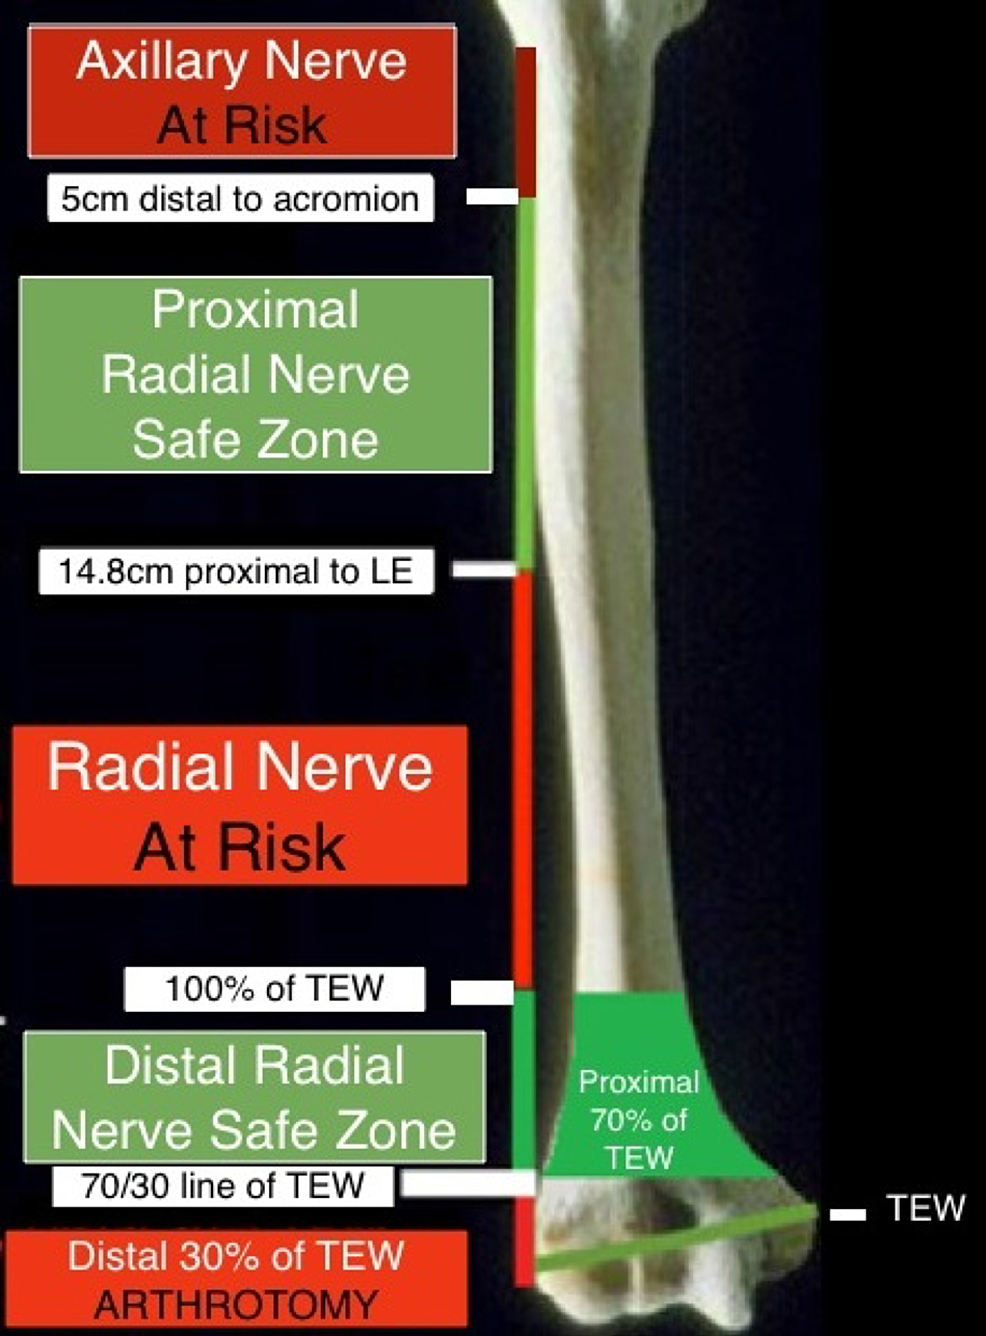 Radial-nerve-safe-zones-about-the-lateral-humerus